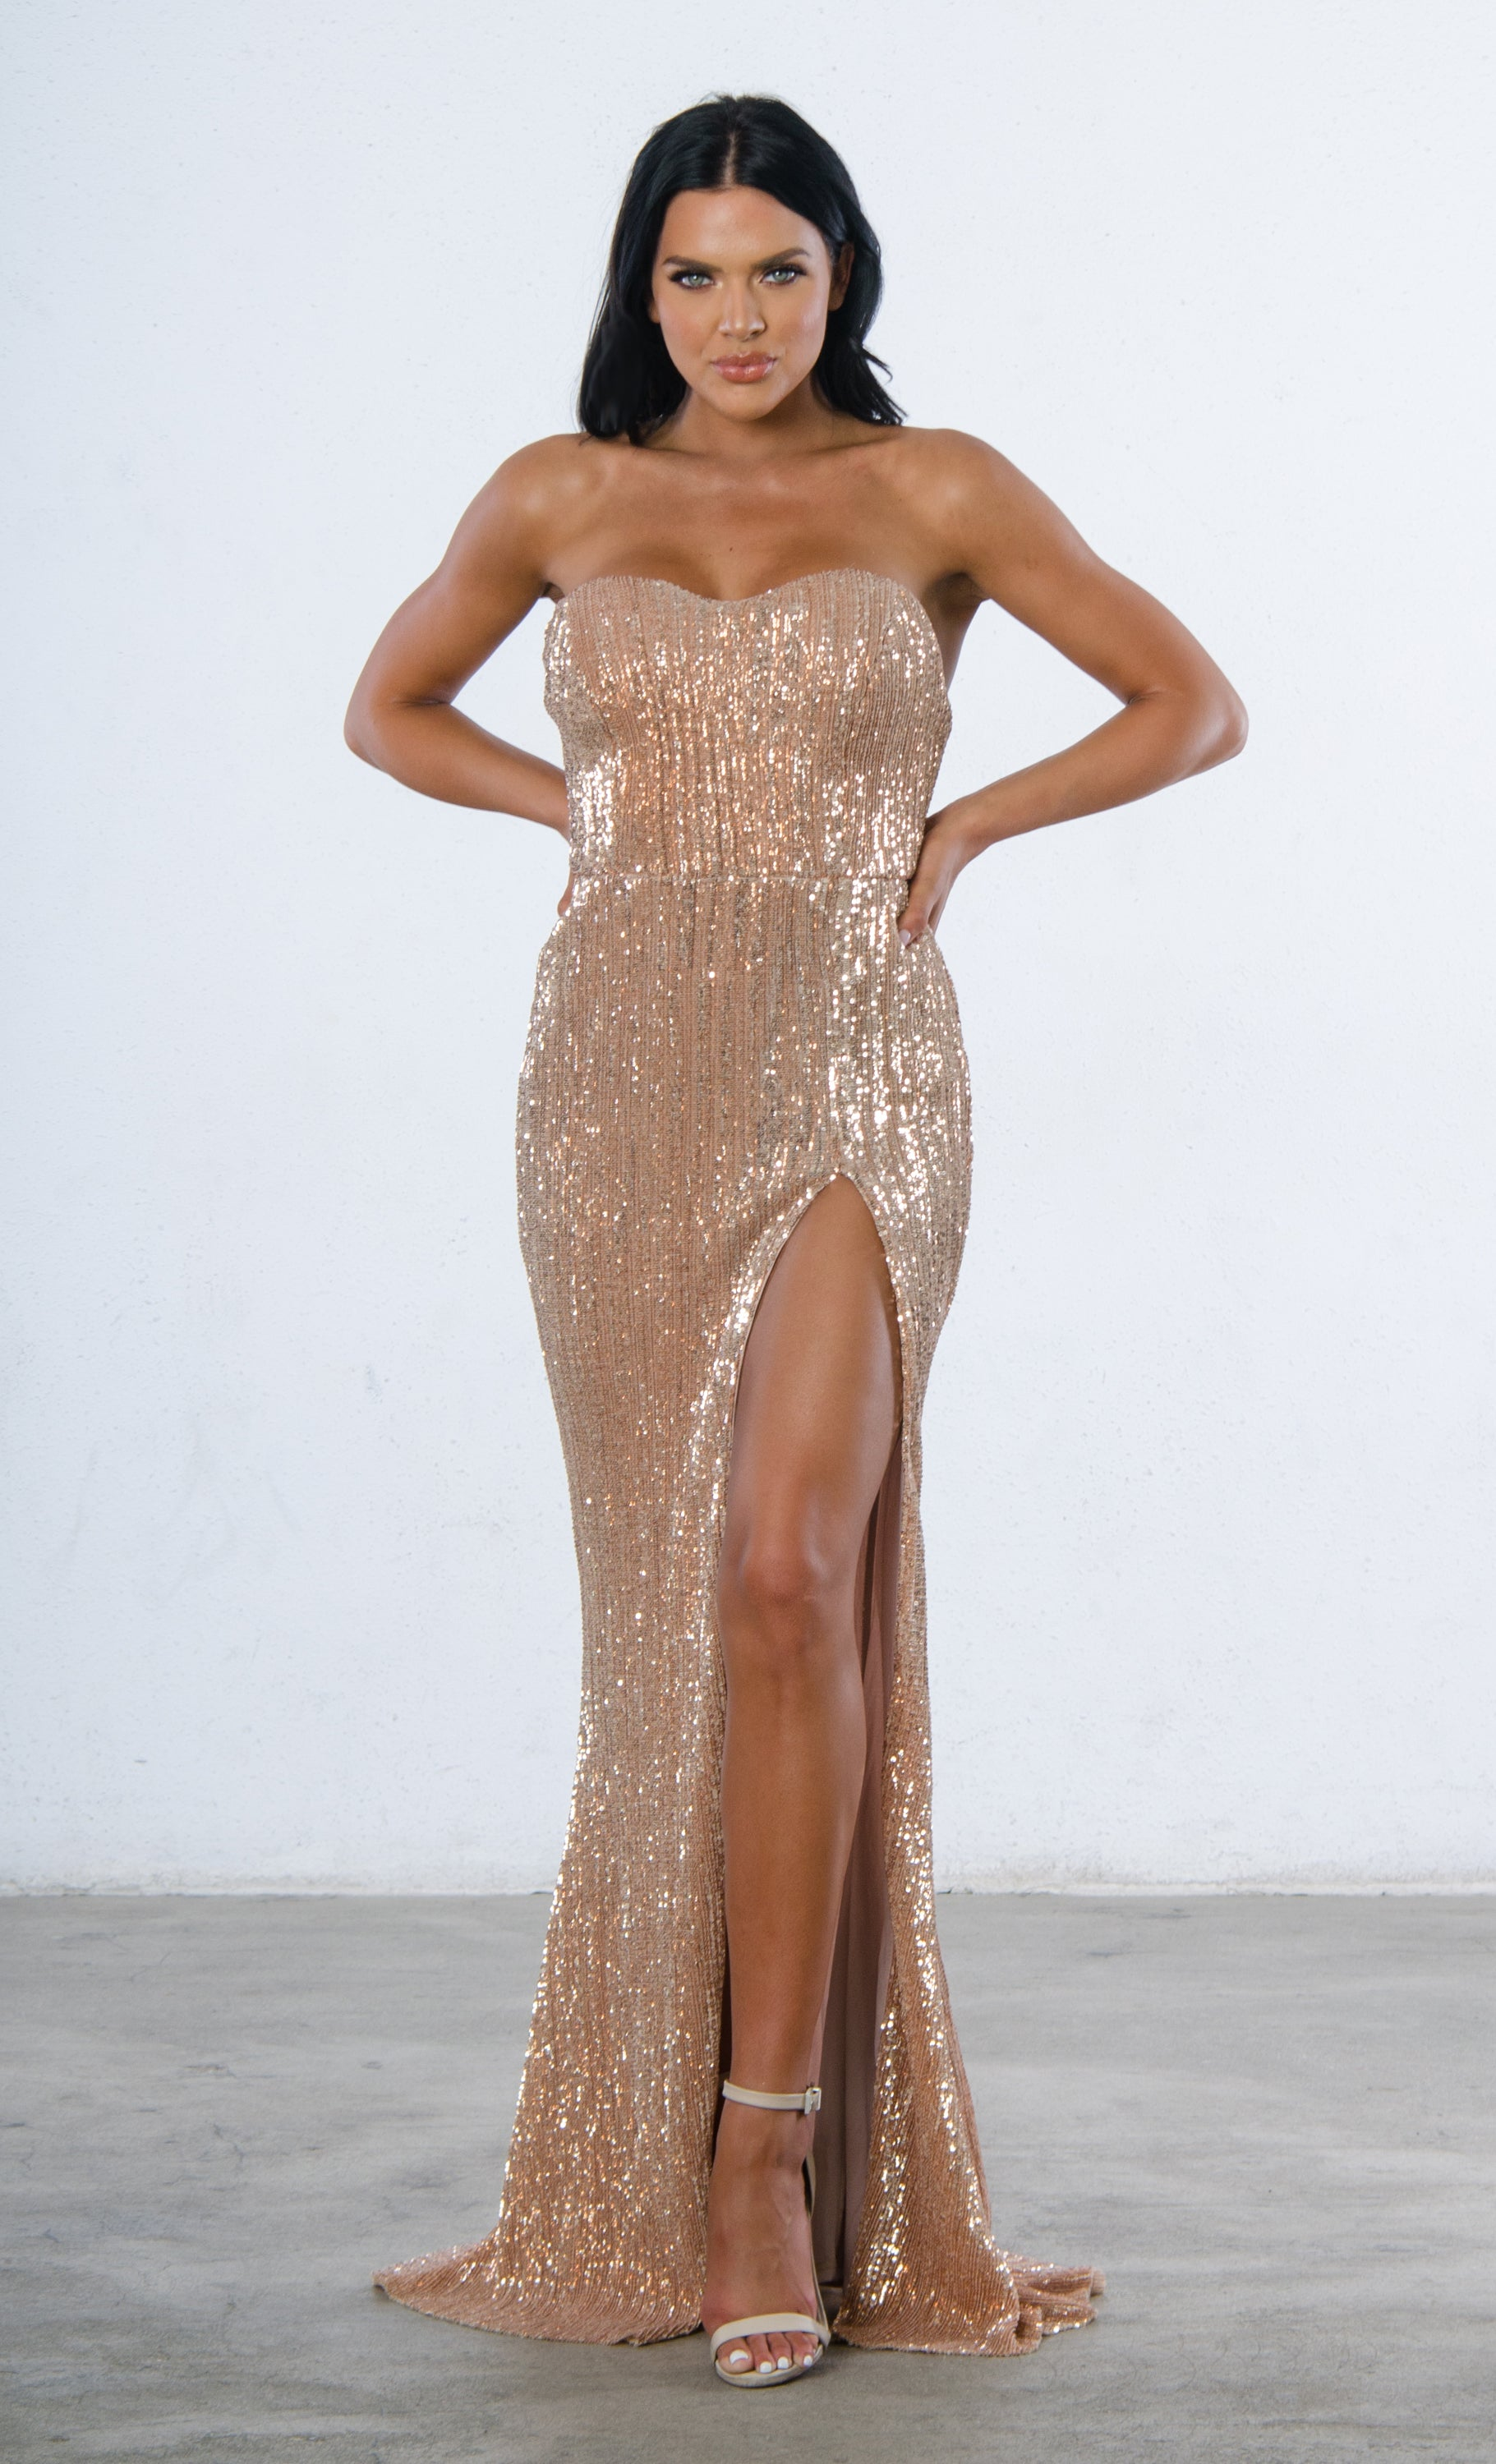 b8b756150c2 Show Me Some Love Champagne Sequin Strapless Sweetheart Neck High Slit  Fishtail Maxi Dress - 5